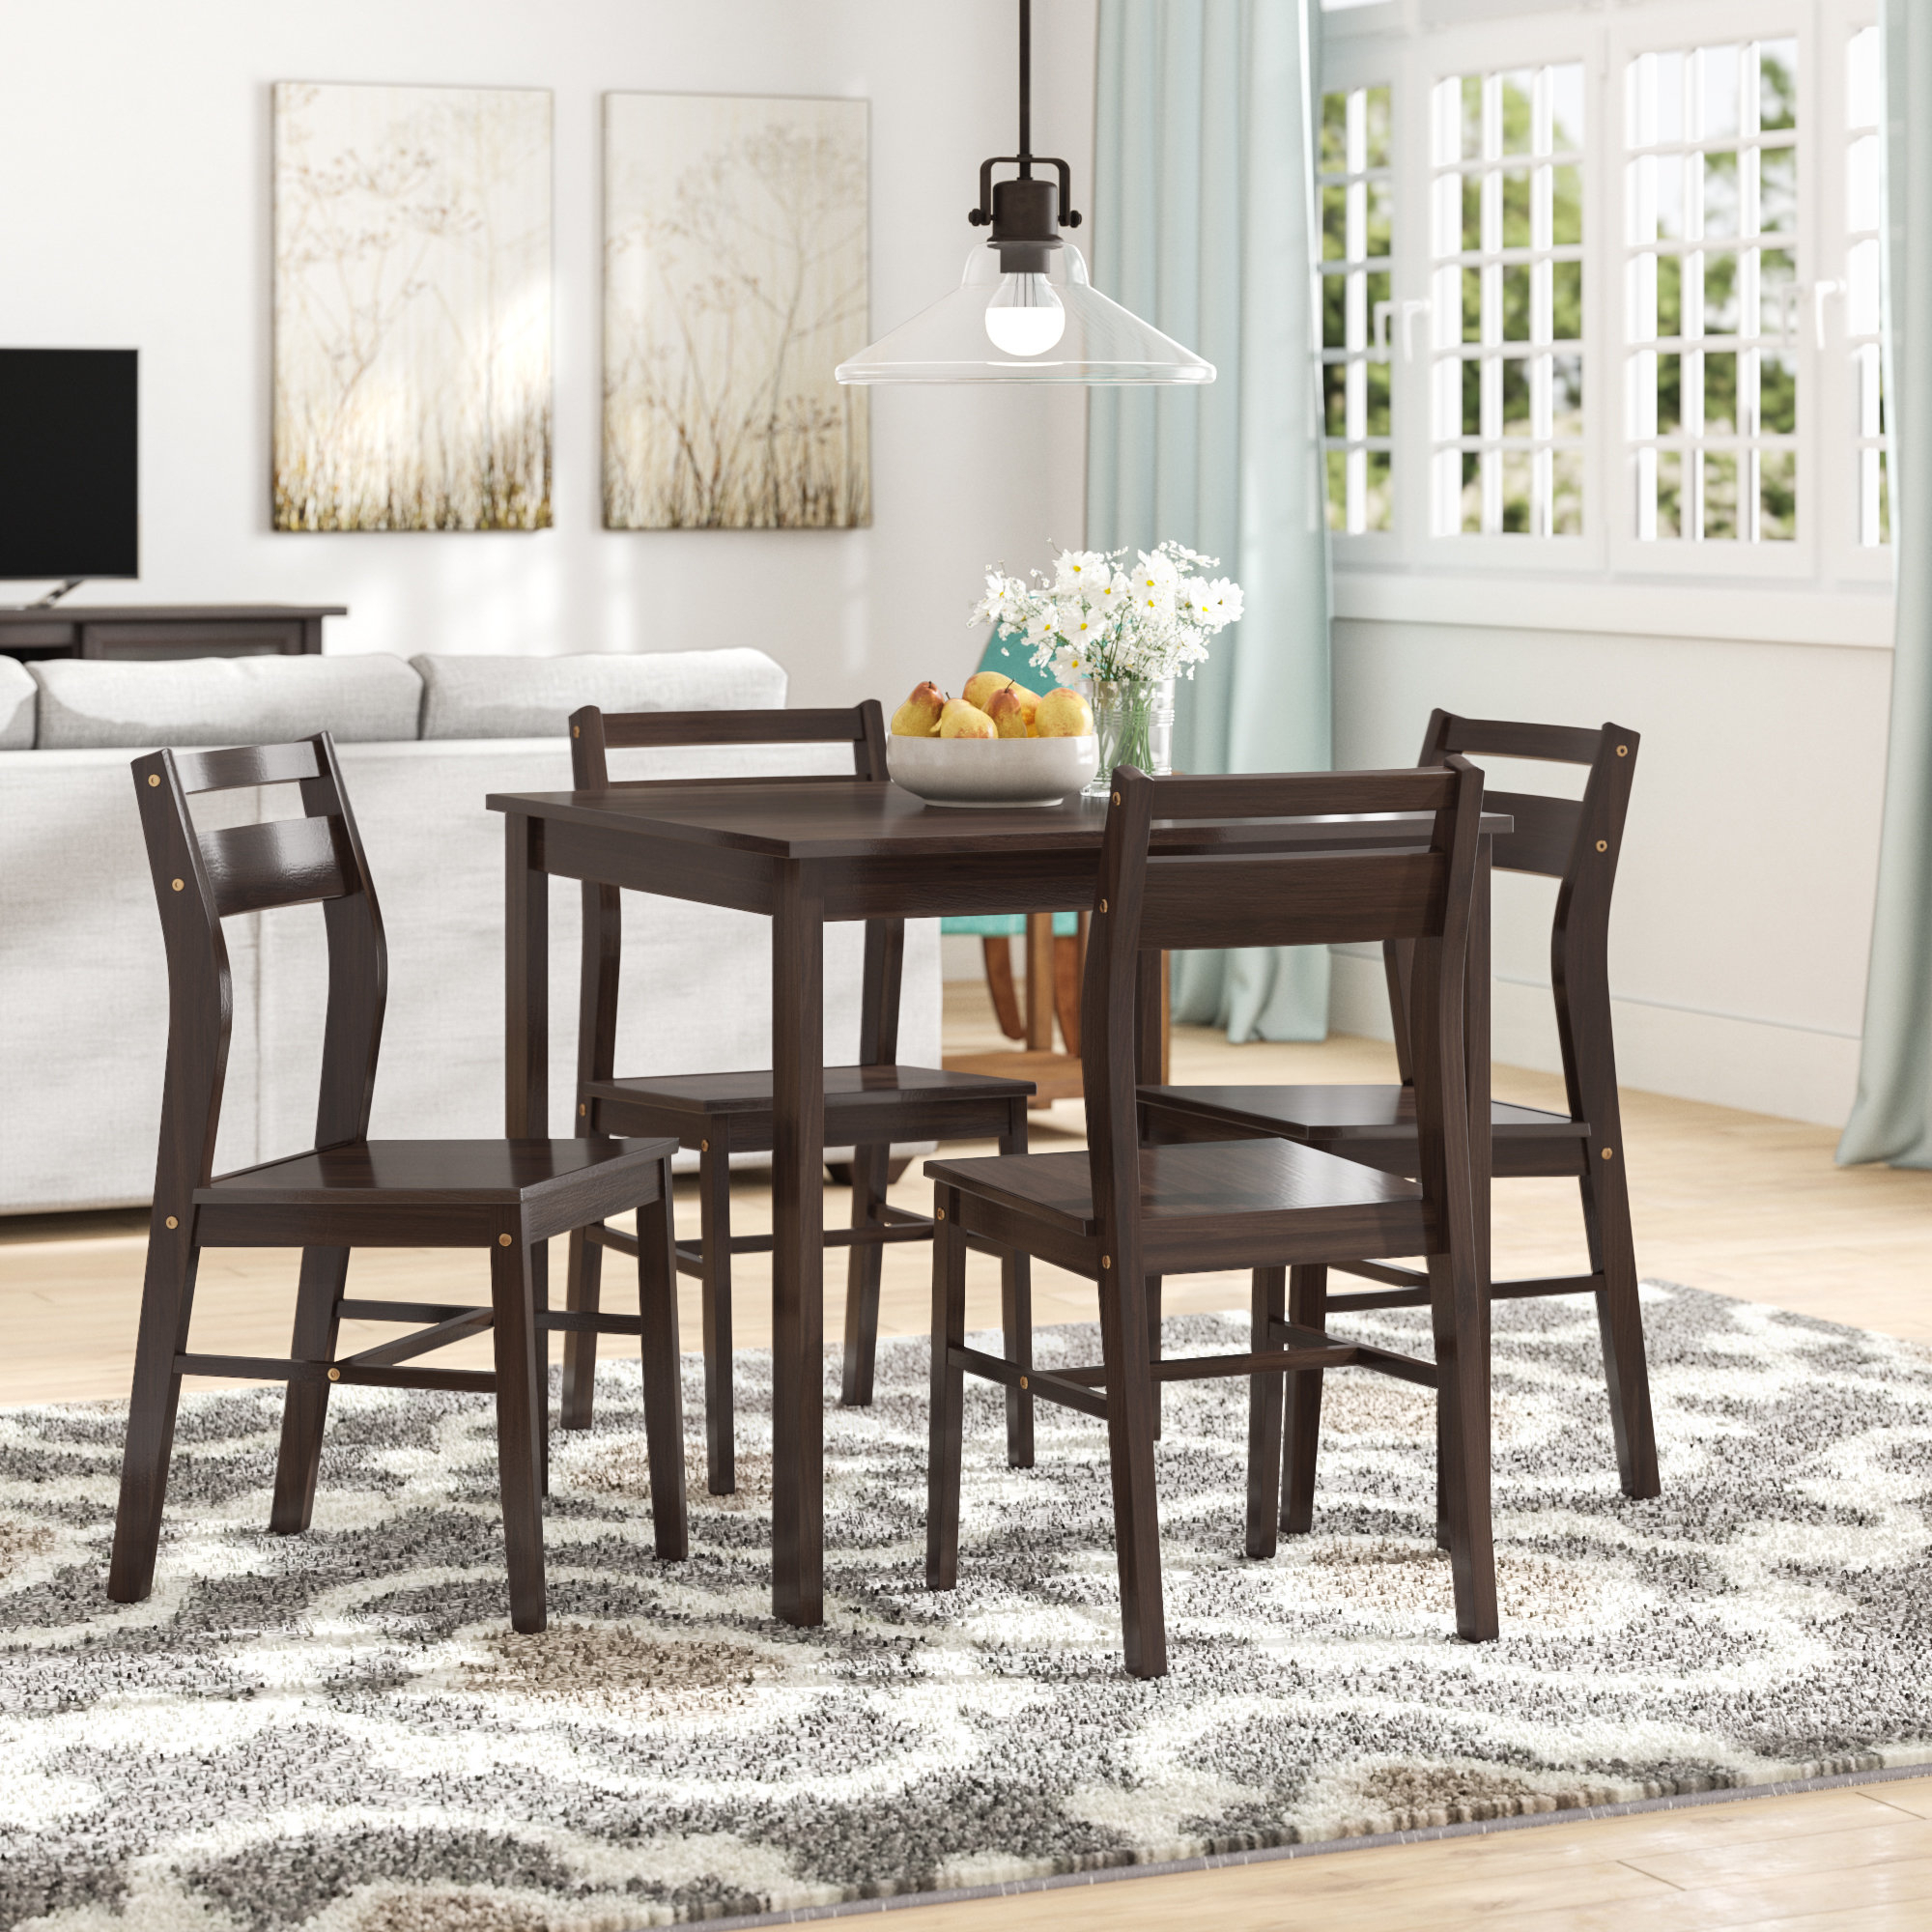 Reinert 5 Piece Dining Sets With Regard To Popular Winston Porter Hersom 5 Piece Dining Set (Gallery 3 of 20)